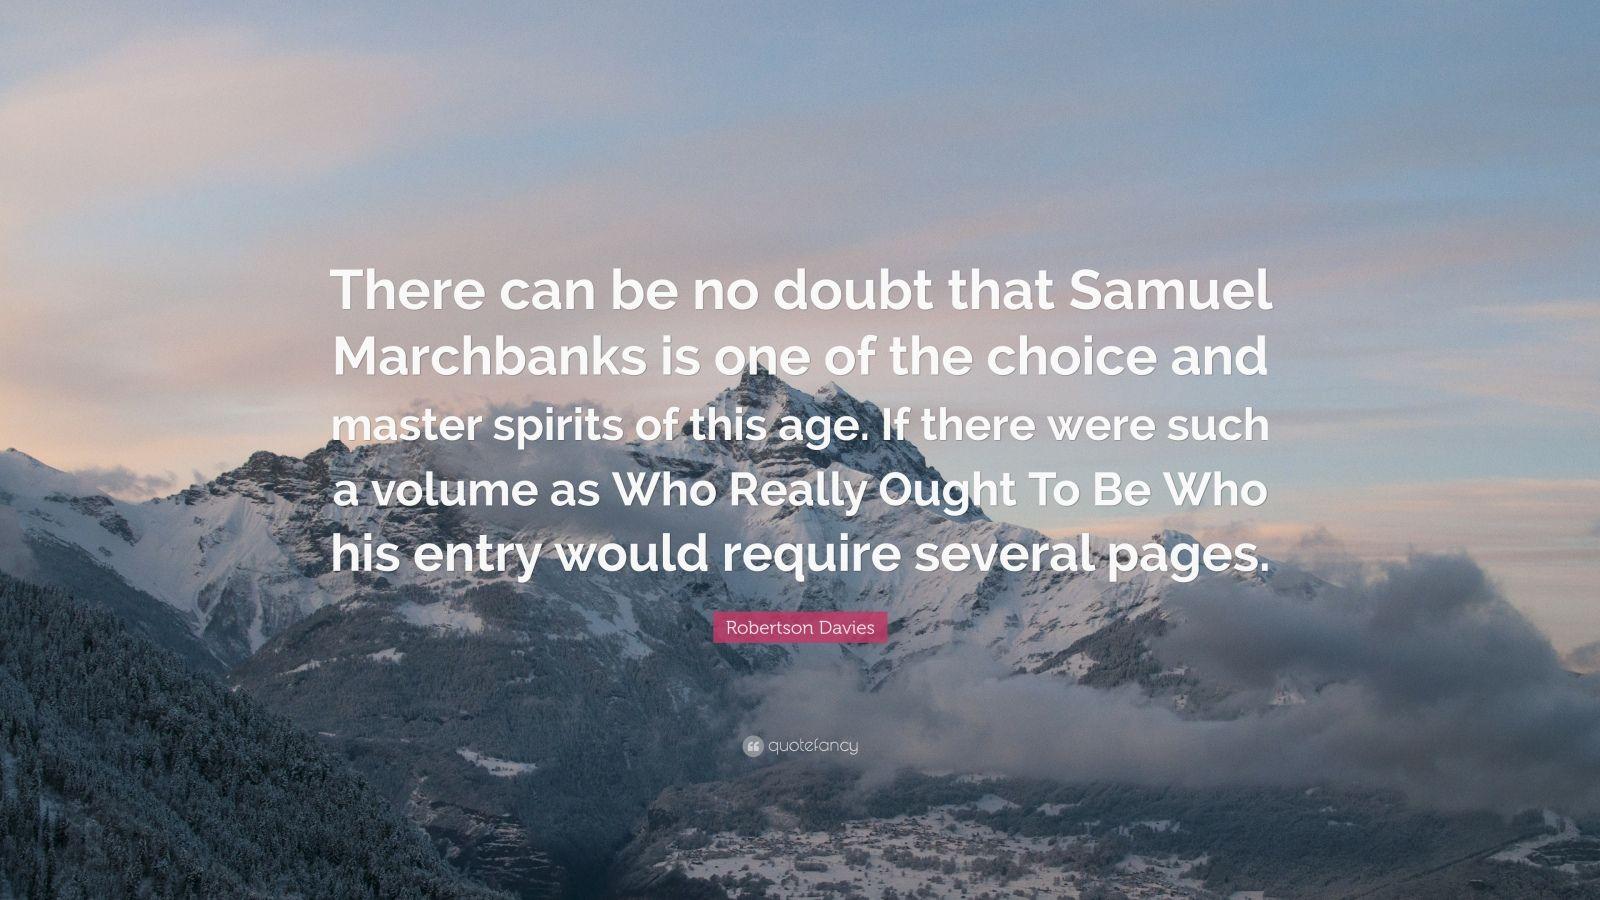 """Robertson Davies Quote: """"There can be no doubt that Samuel Marchbanks is one of the choice and master spirits of this age. If there were such a volume as Who Really Ought To Be Who his entry would require several pages."""""""